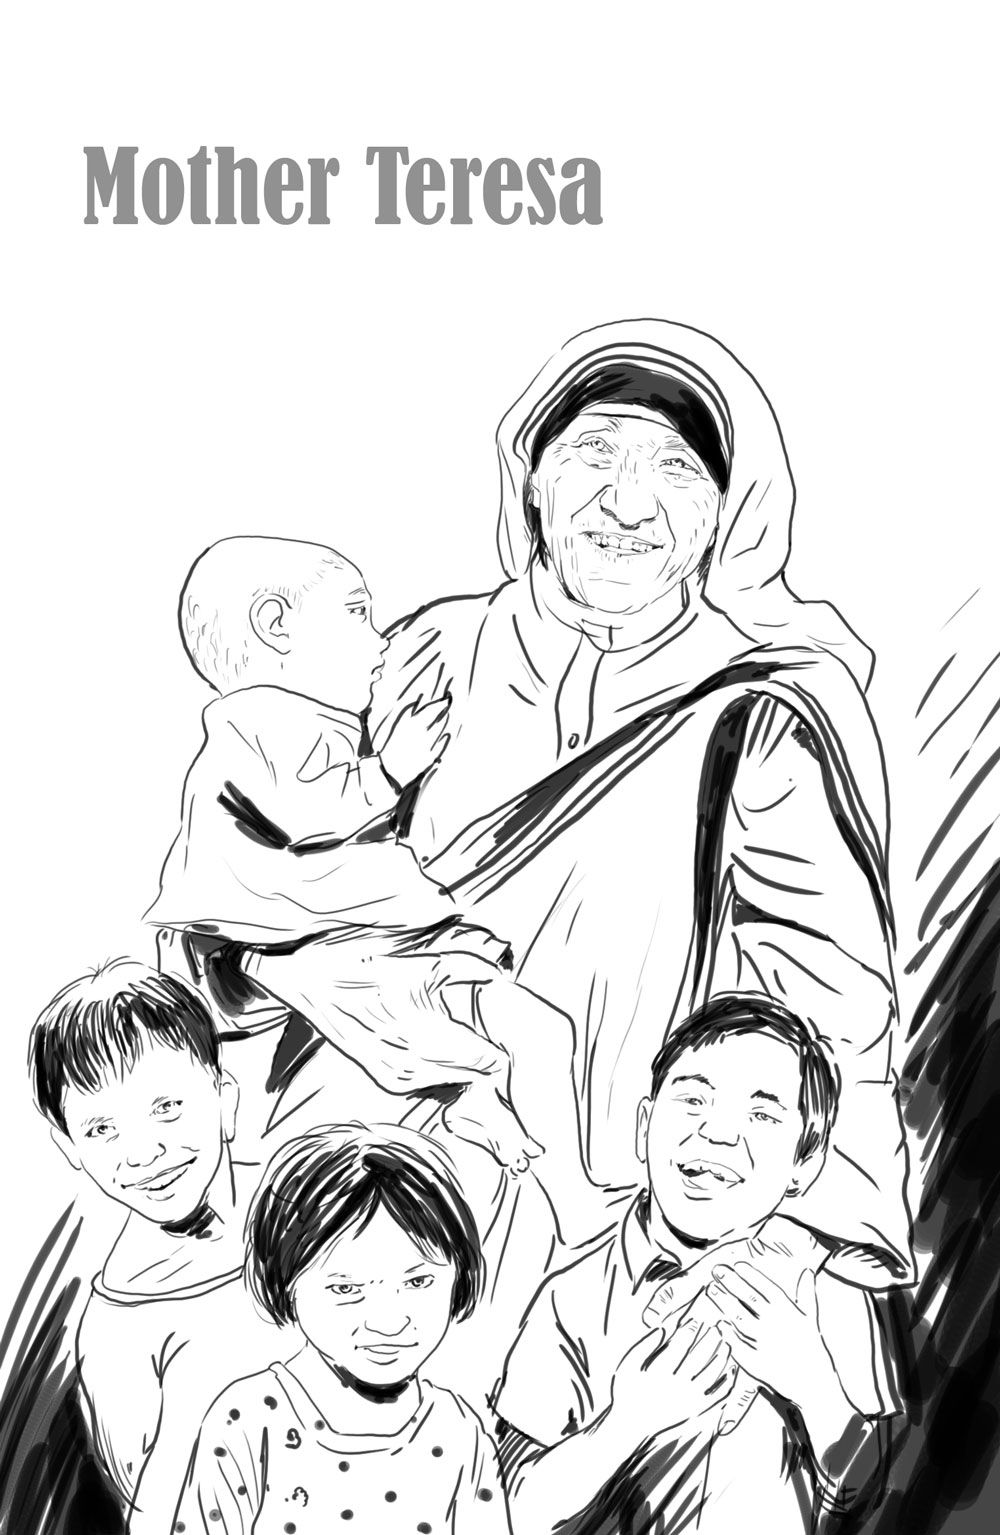 bp.blogspot.com: Mother Teresa with children coloring page ...